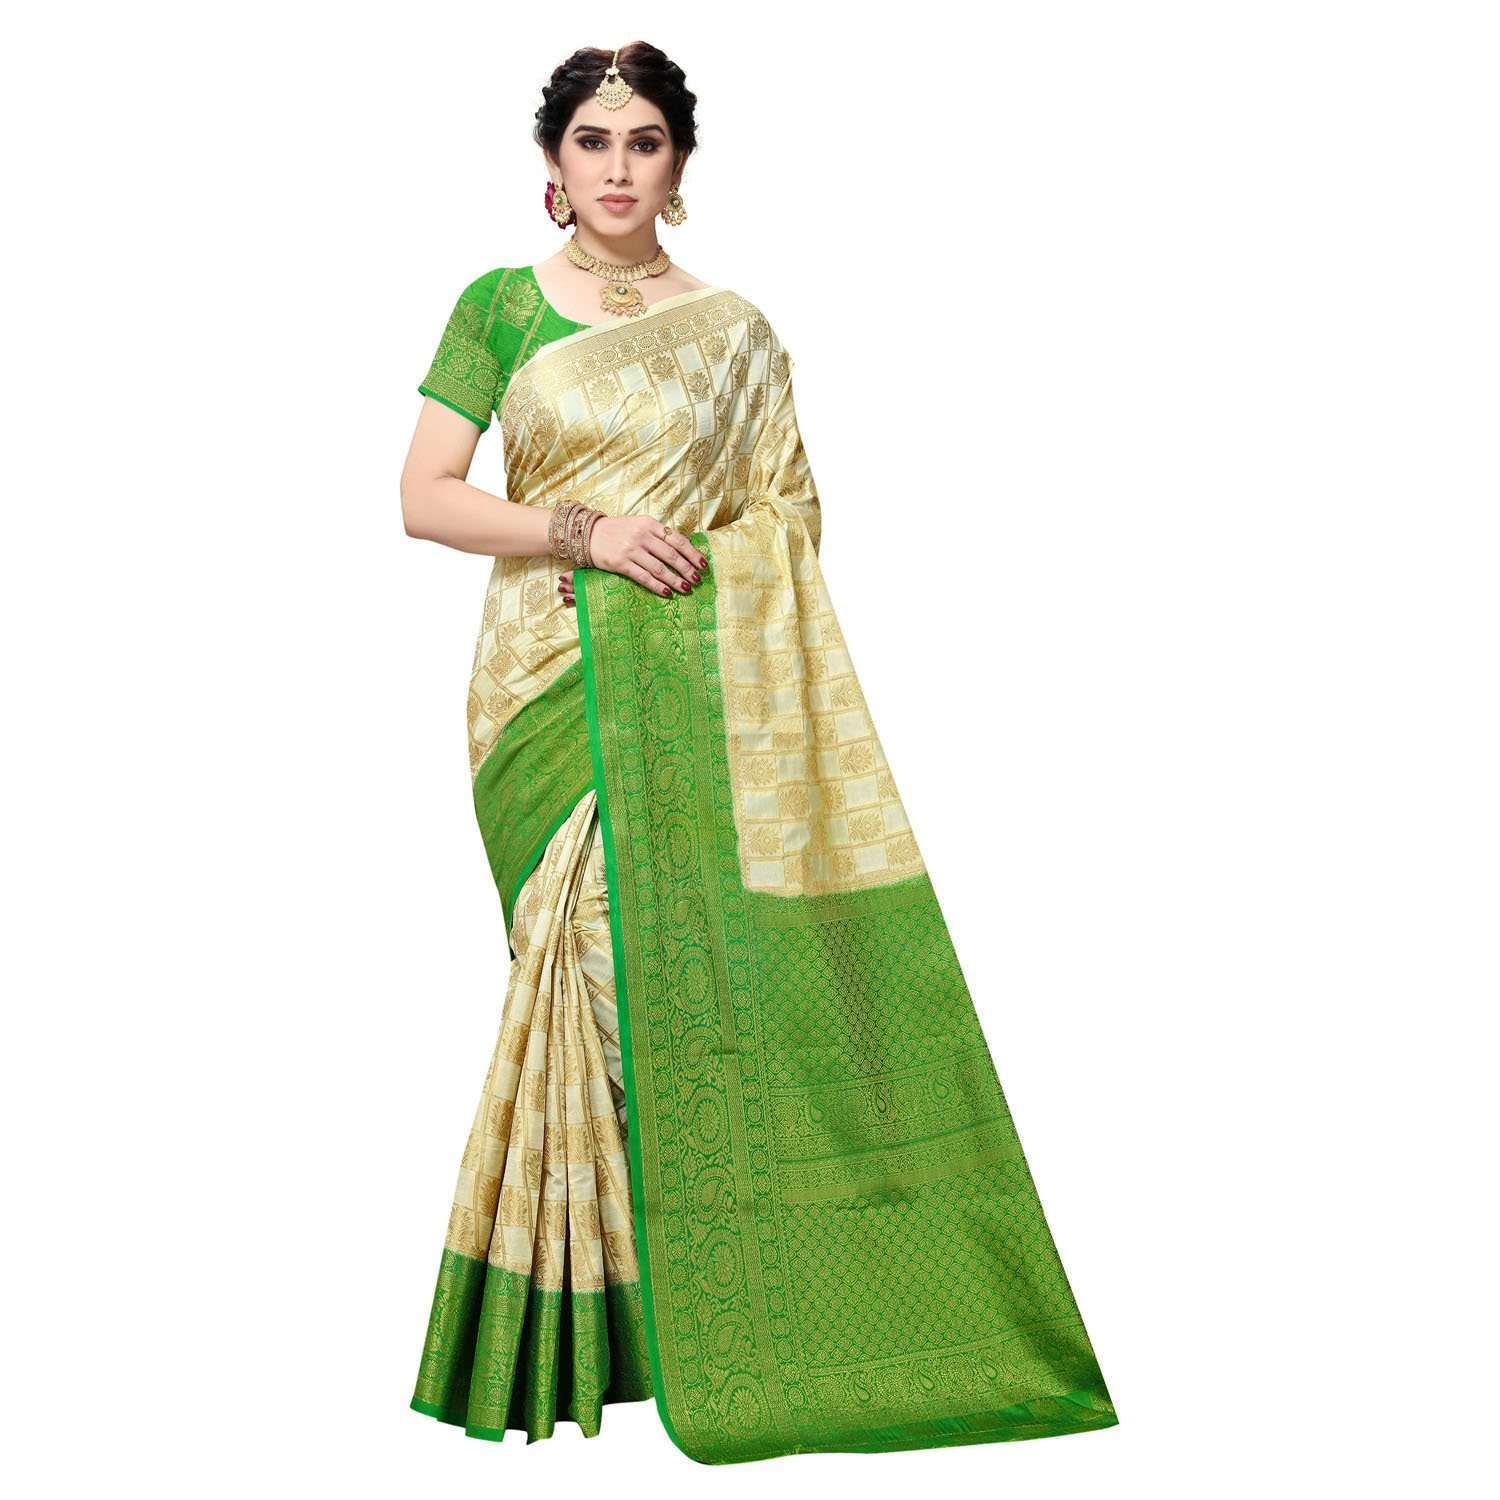 arars Women's Kanchipuram Pattu banarasi Silk Saree With Blouse (515_cream&green )